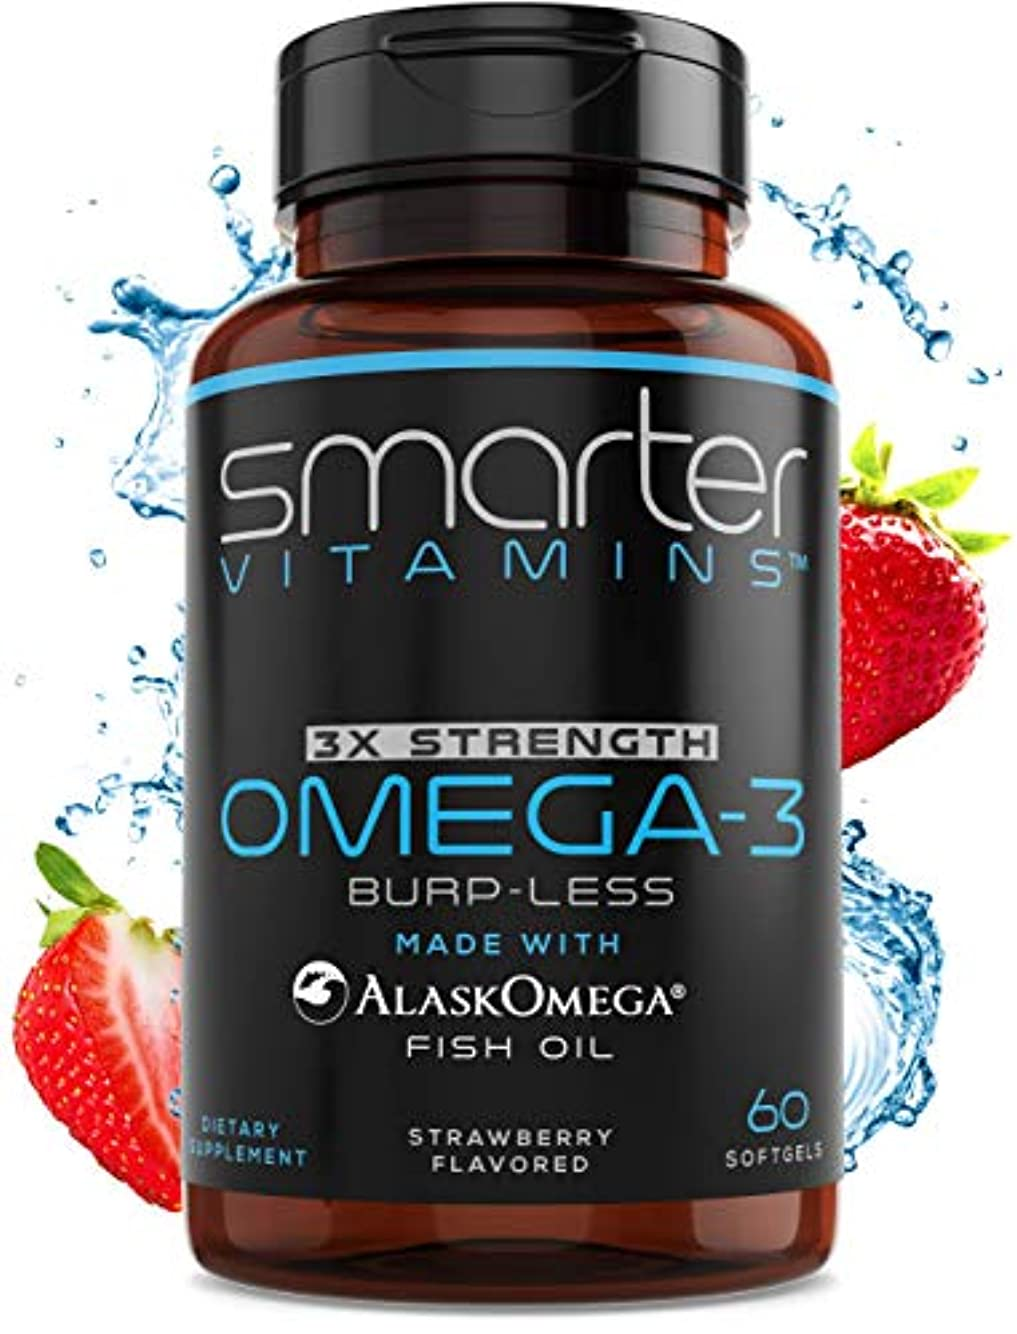 アンデス山脈ブラウズ誤解を招くSmarterVitamins Omega 3 Fish Oil, Strawberry Flavor, Burpless, DHA EPA Triple Strength 60粒